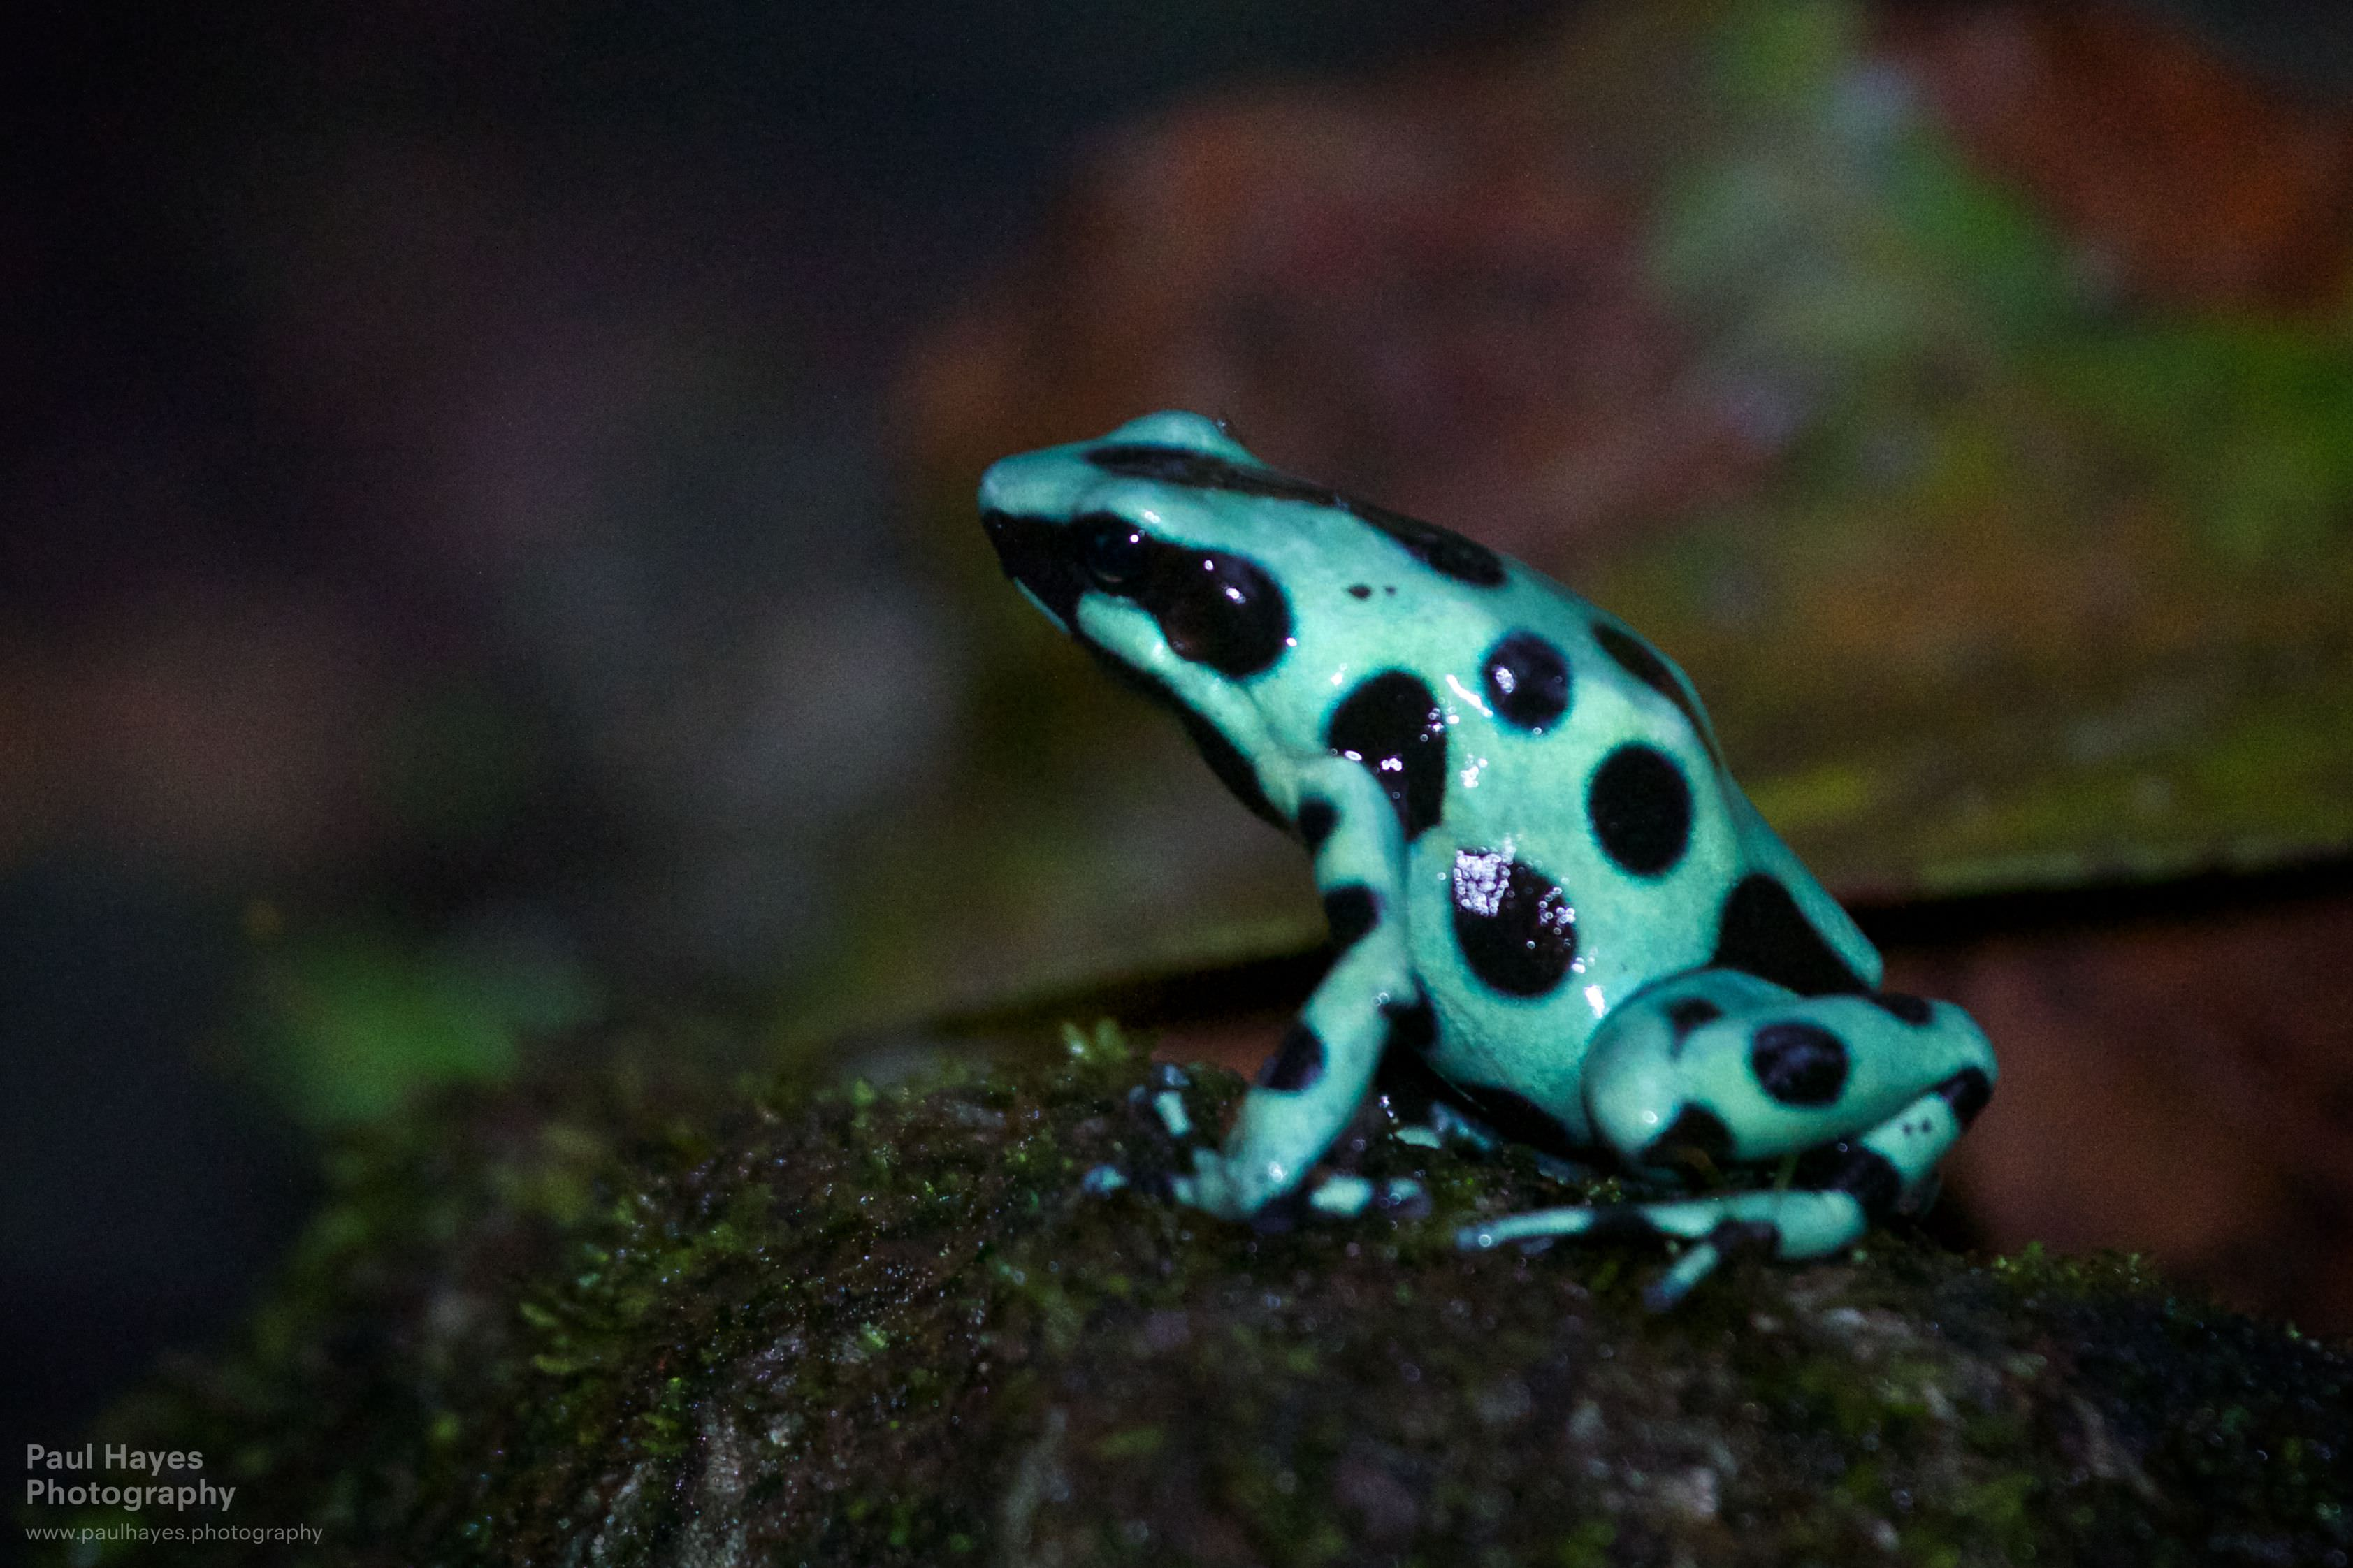 Sloth sanctuary and poisonous frogs – Cahuita, Costa Rica Are Green Frogs Poisonous